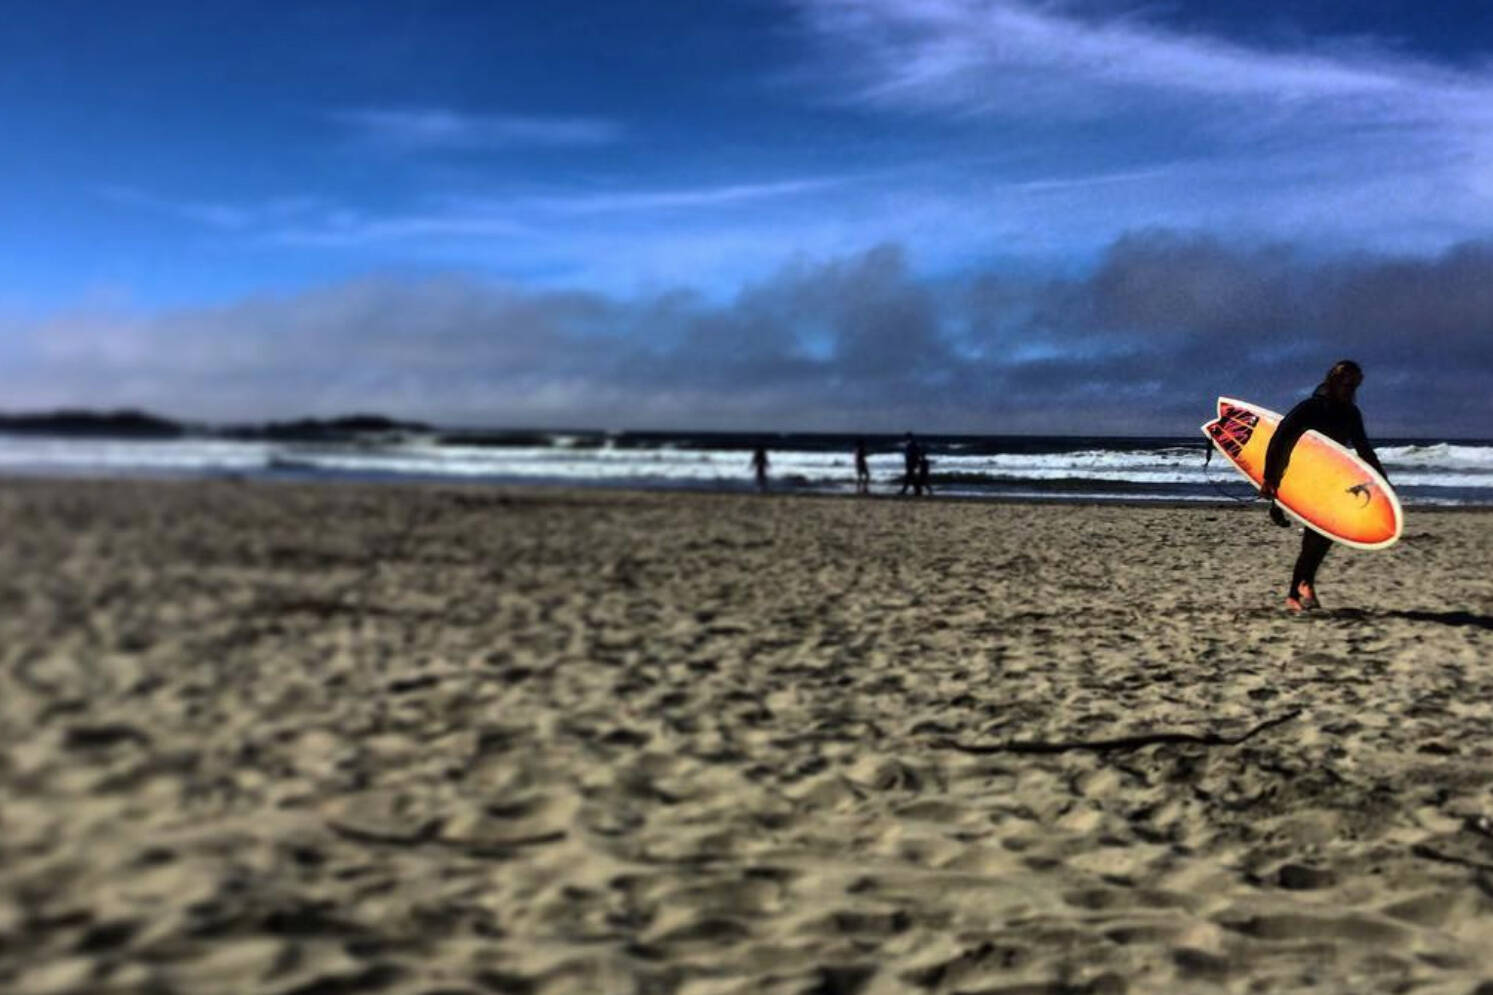 Visitors have poured back on to the beaches of the Tofino area, but an inability to attract and keep staff is preventing local businesses from being able to take full advantage. (John McKinley file)